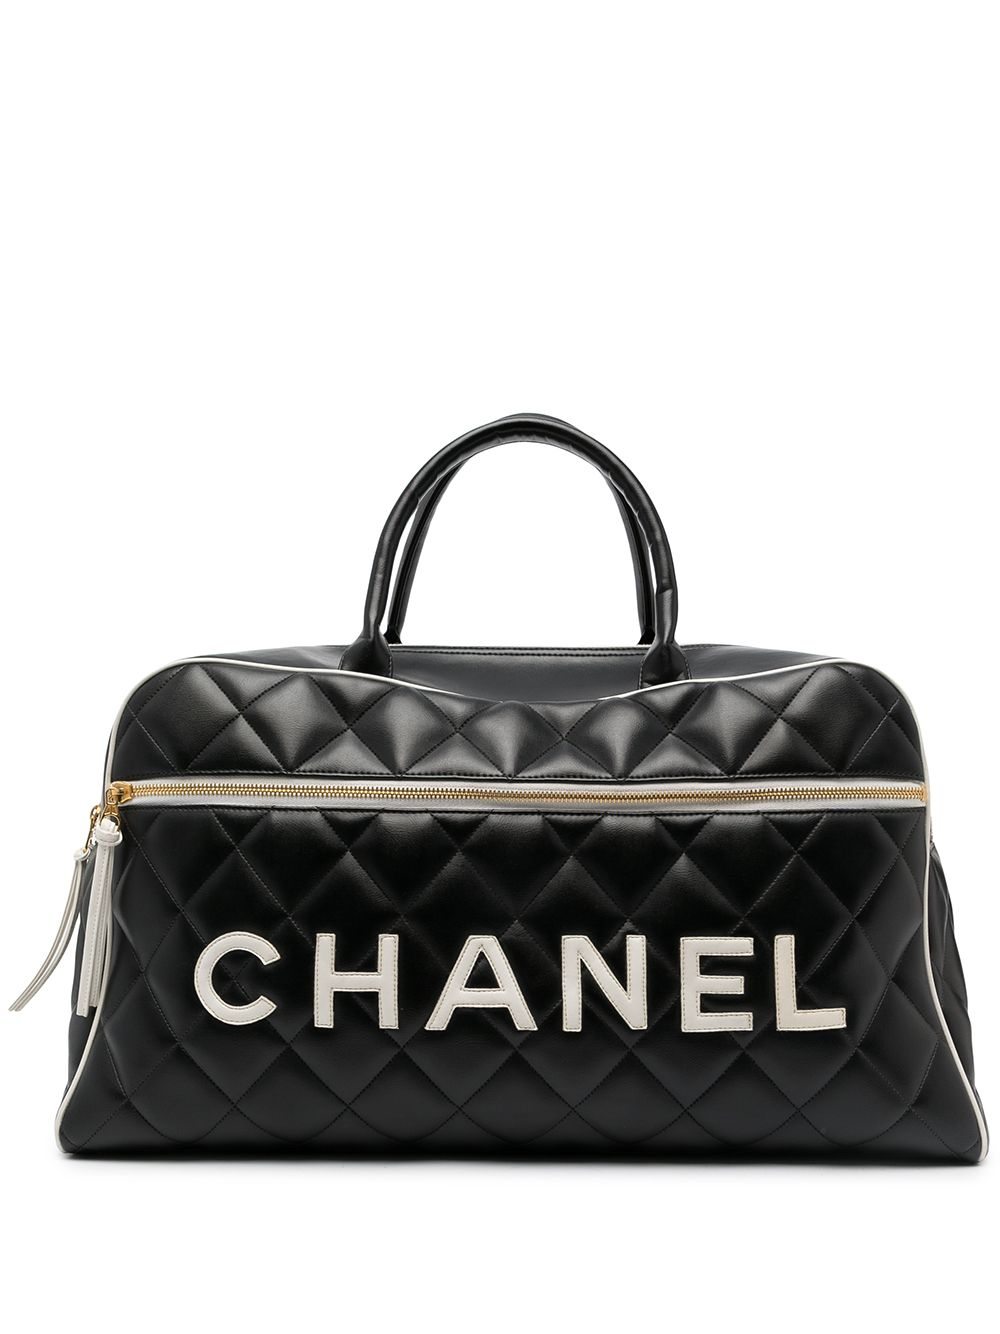 Chanel Pre-Owned 1995 diamond quilted logo Boston bag - Black